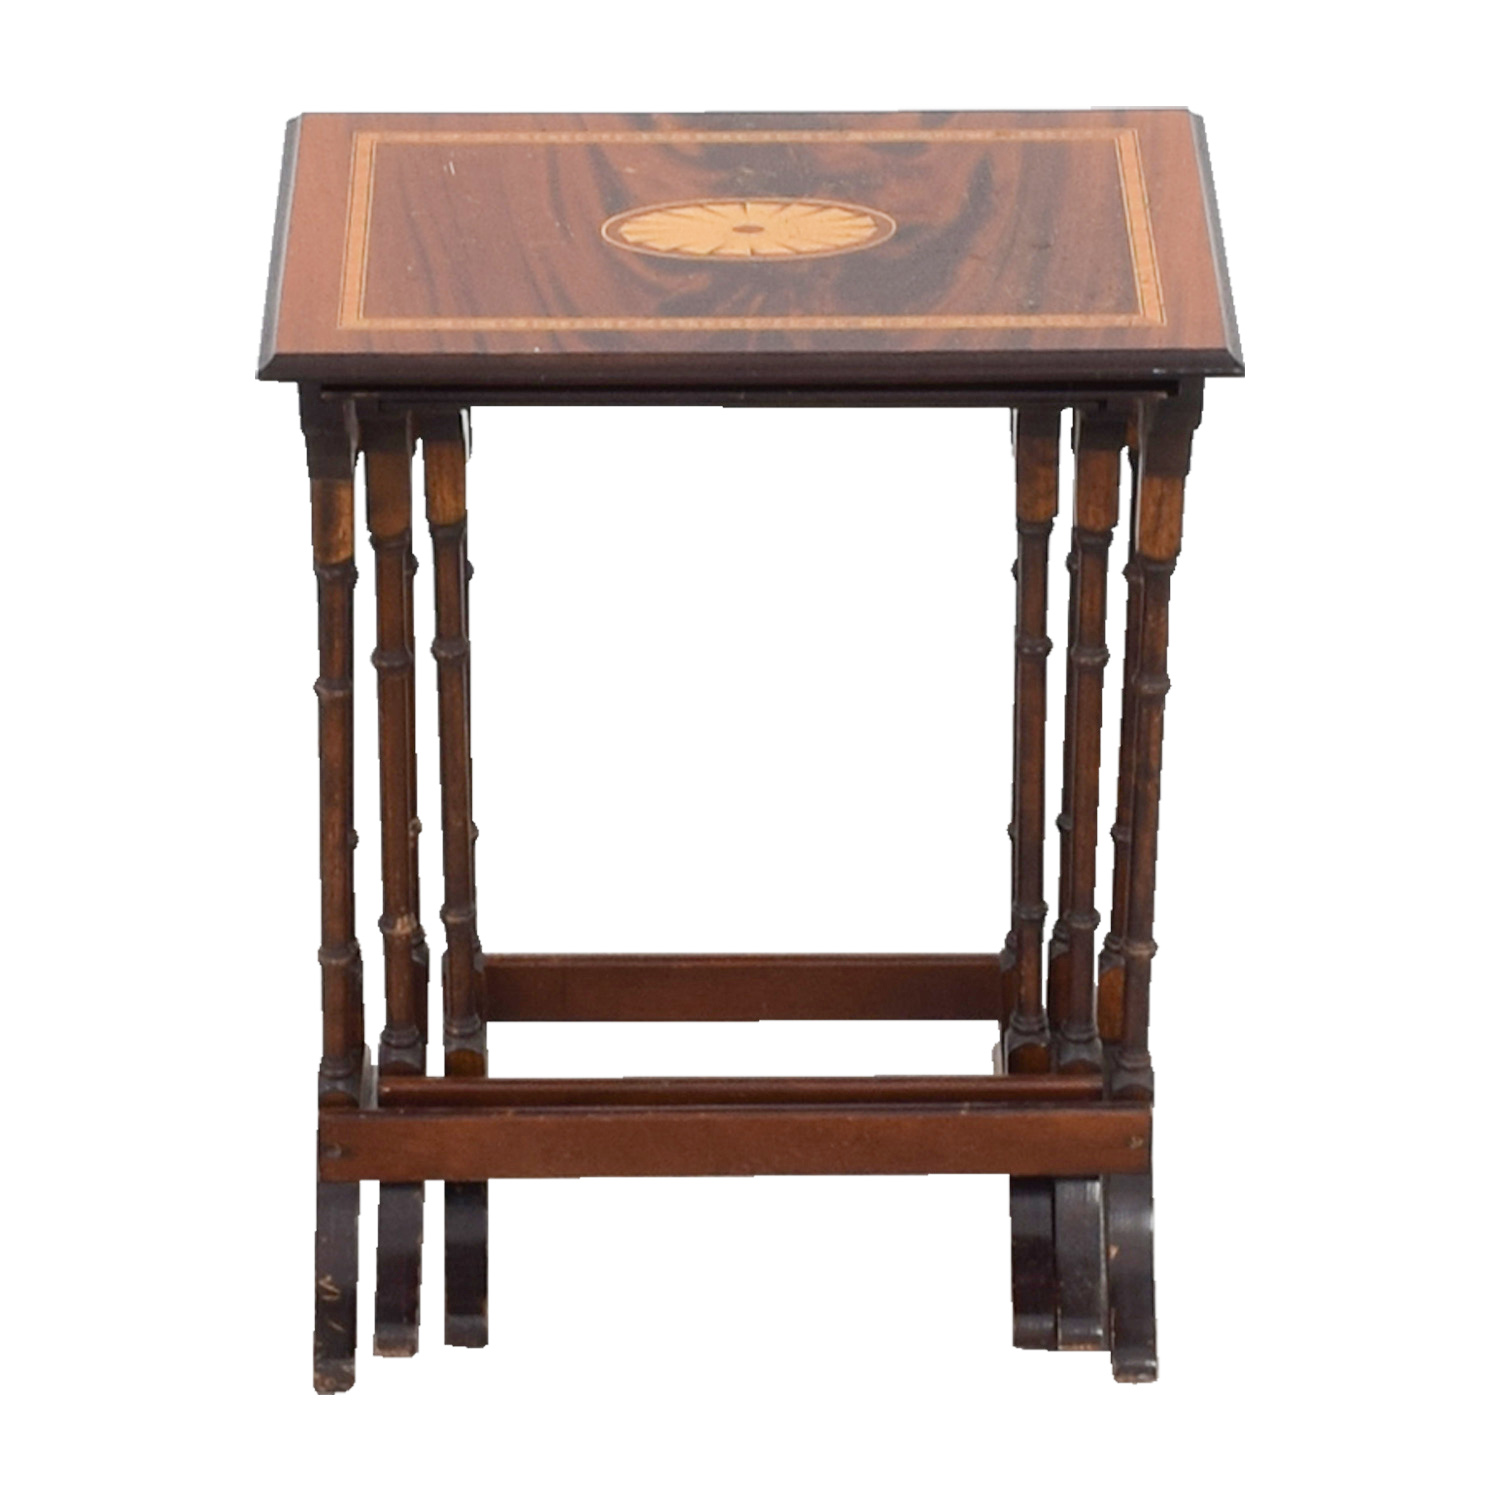 Wood Nesting Tables dimensions